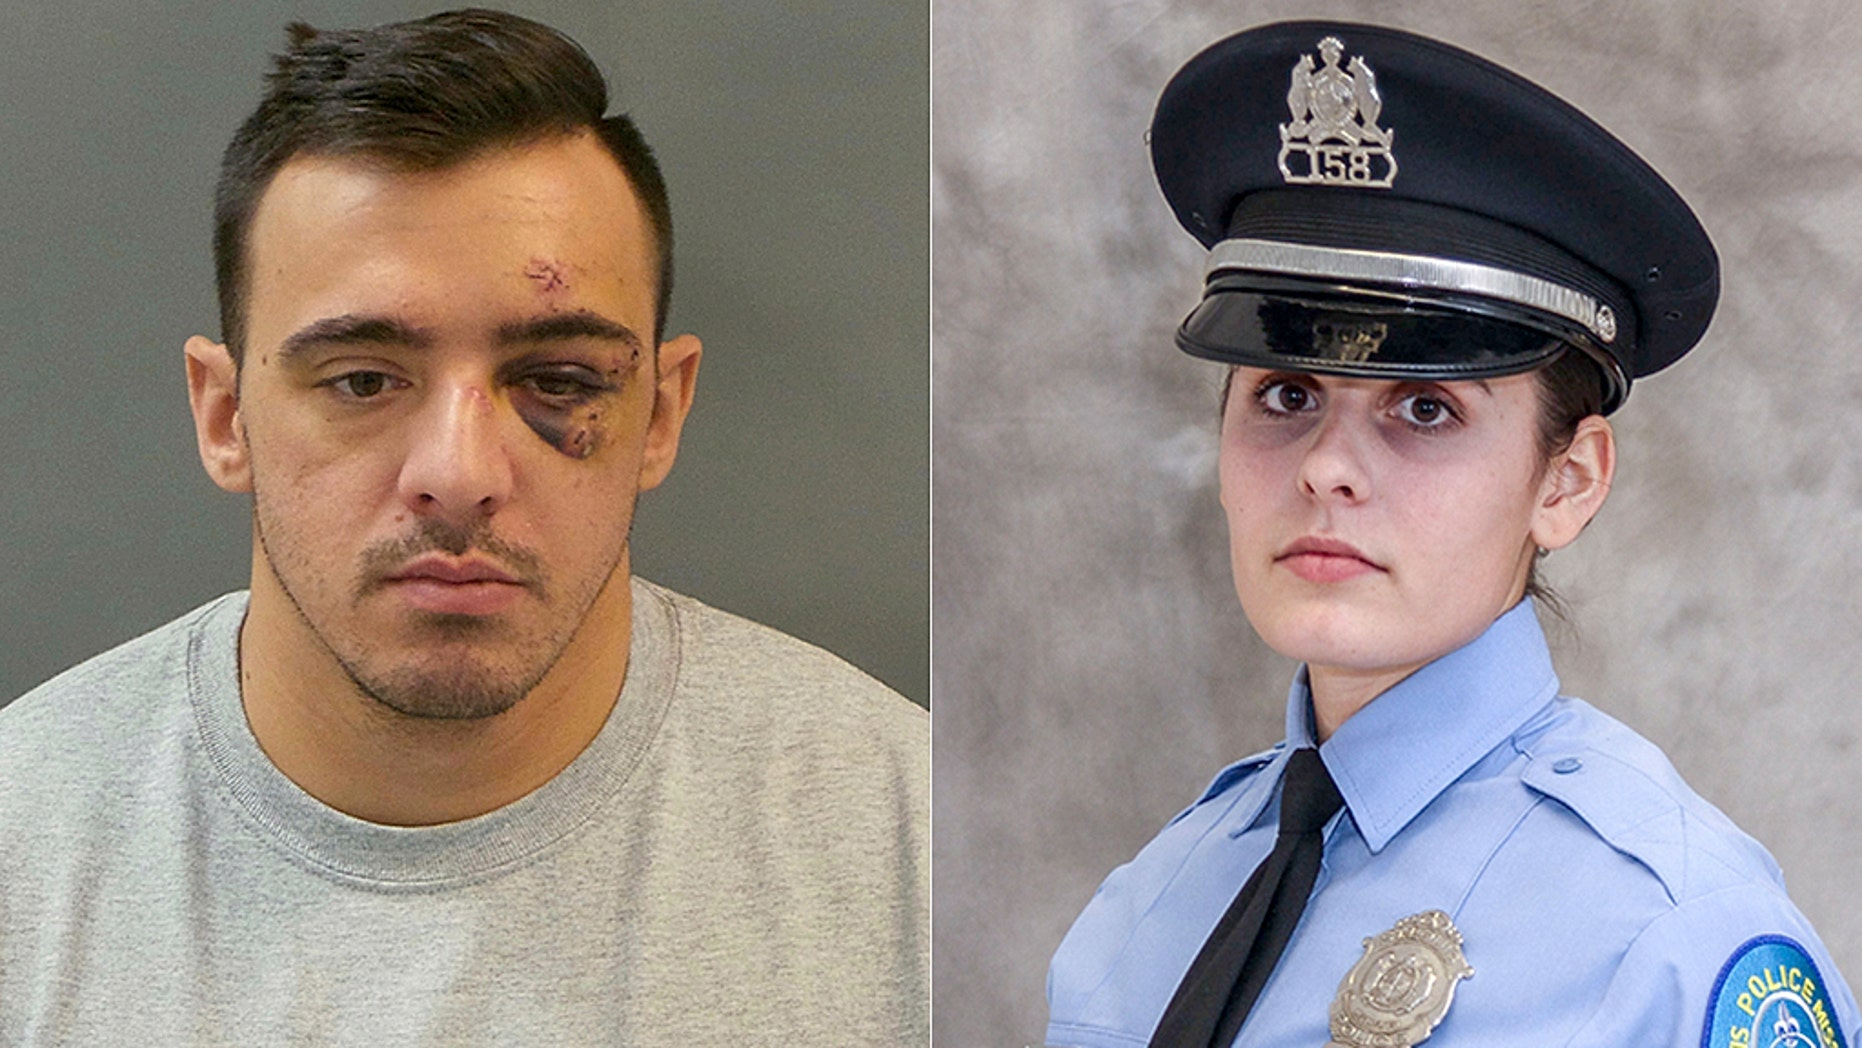 St. Louis police Officer Nathaniel Hendren, 29, faces charges of involuntary manslaughter in the shooting death of Officer Katlyn Alix, 24, authorities say.